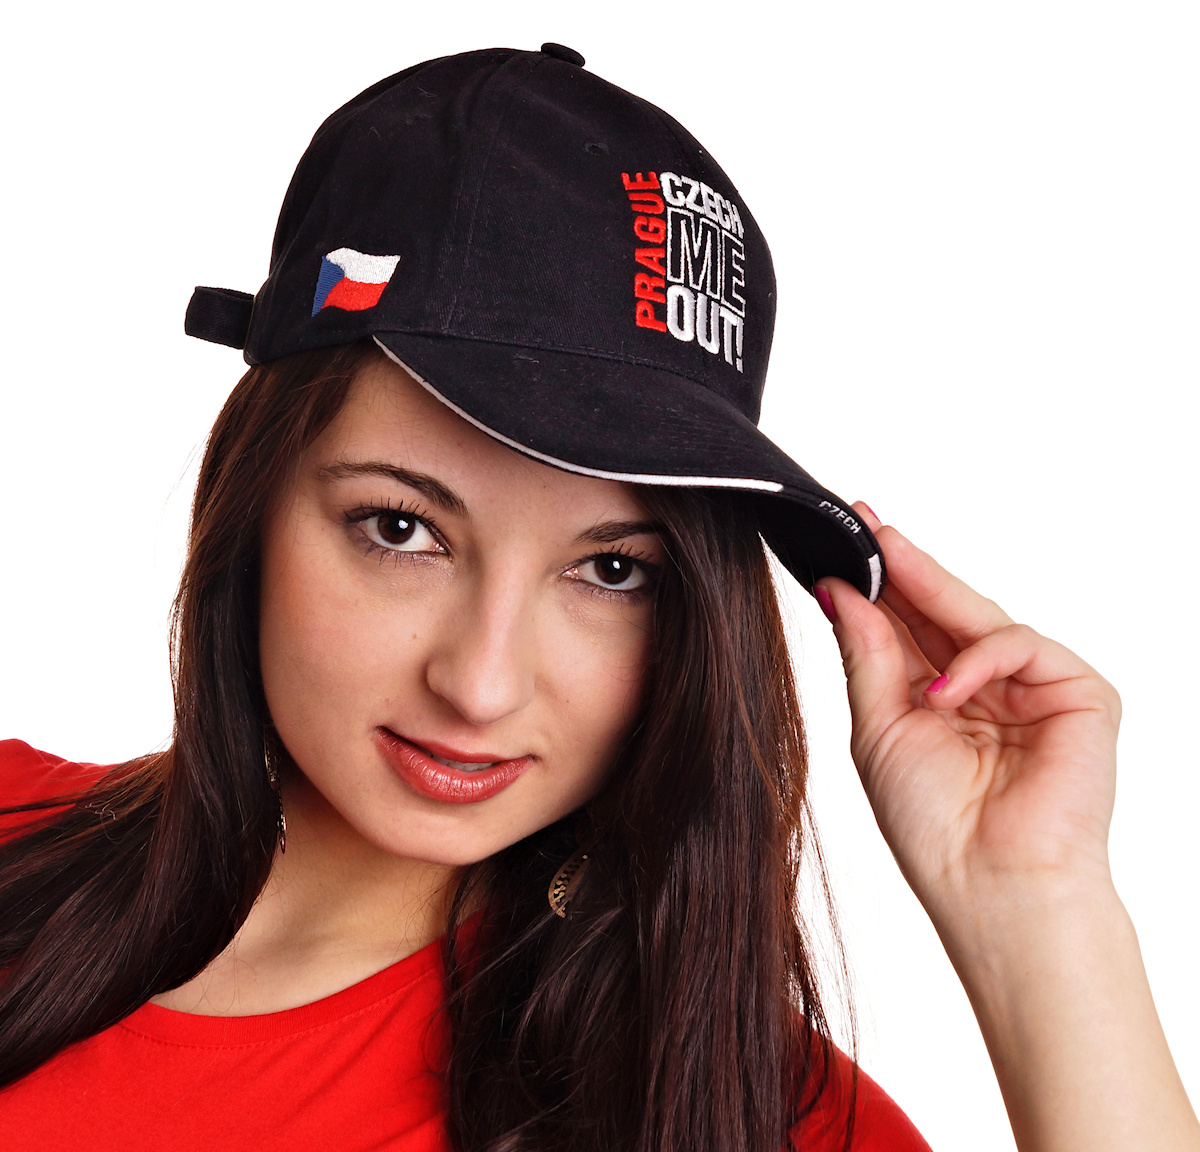 Prague Czech Me Out! baseball cap